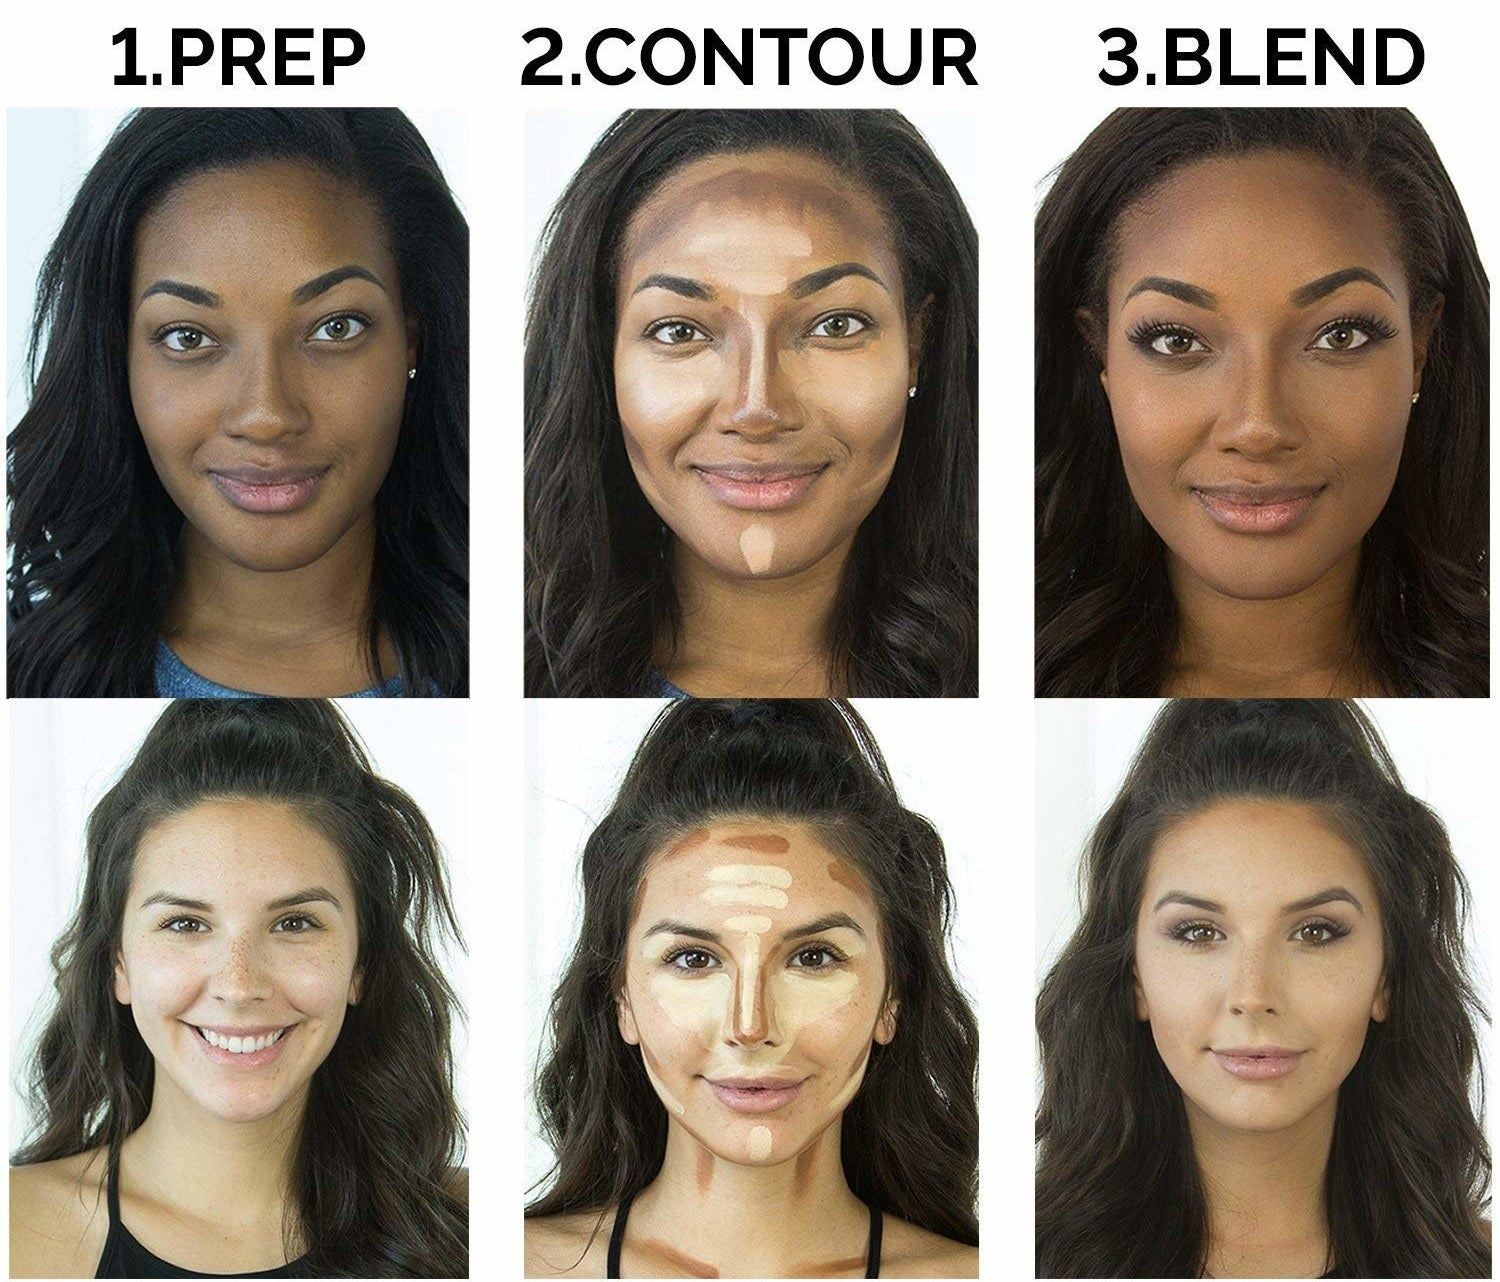 27 Things You Need If You've Basically Never Done Your Makeup Correctly